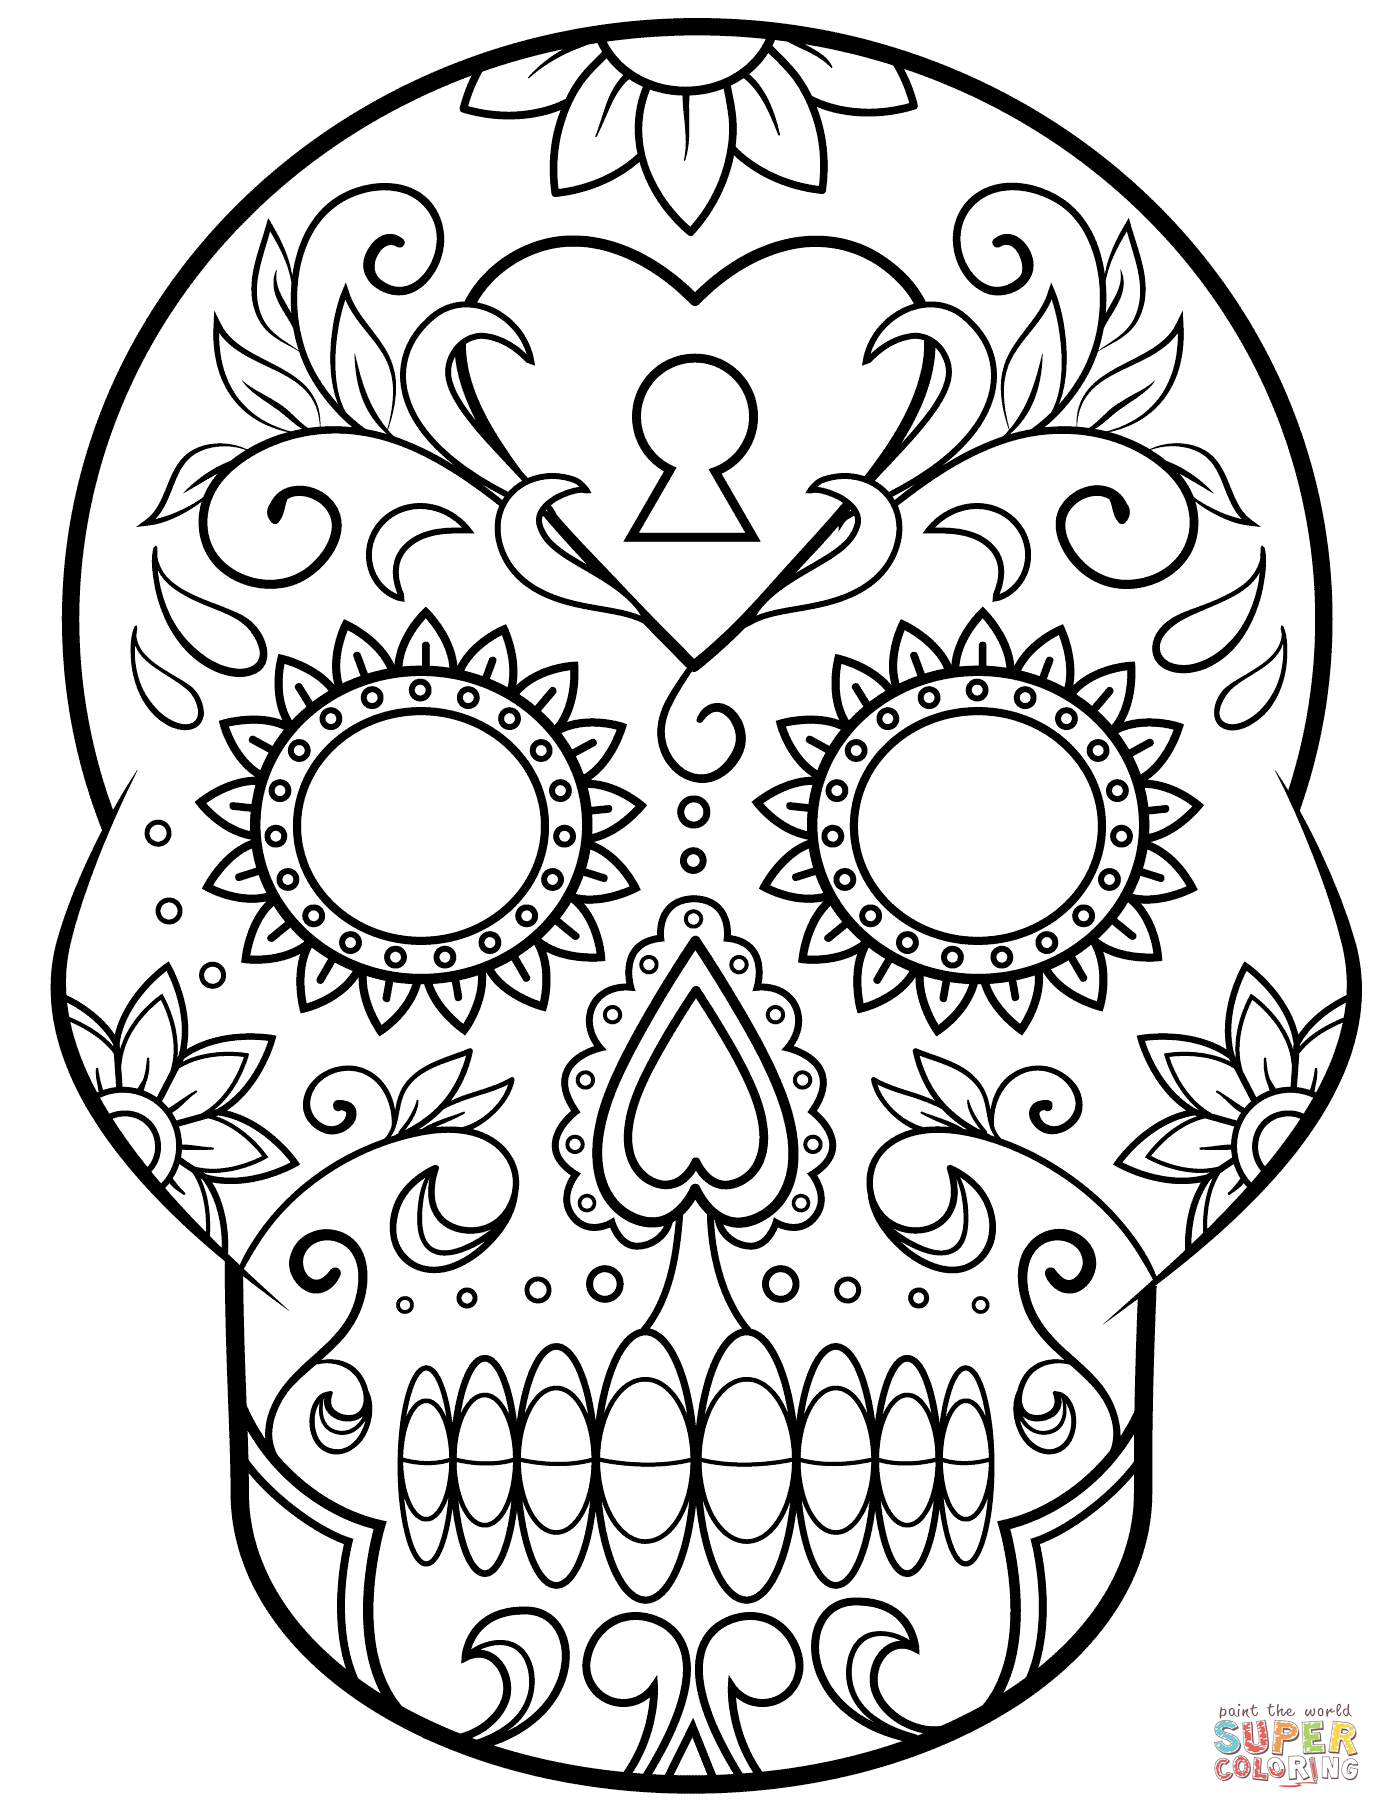 Day Of The Dead Sugar Skull Coloring Page   Free Printable - Free Printable Day Of The Dead Coloring Pages